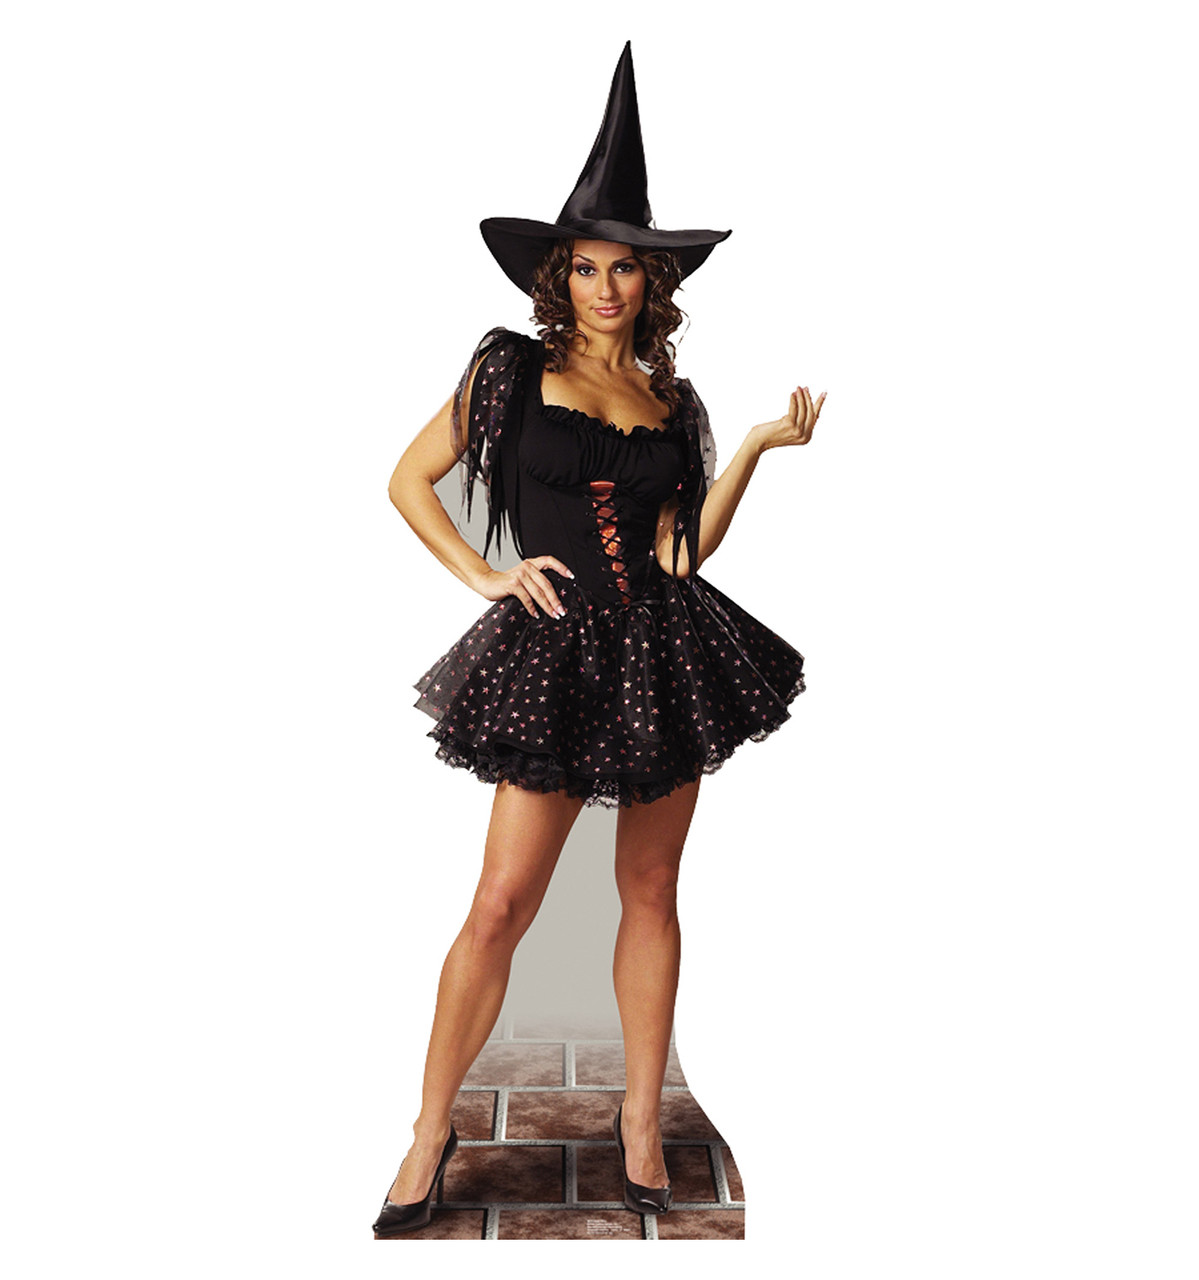 Life-size Glitter Witch Cardboard Standup